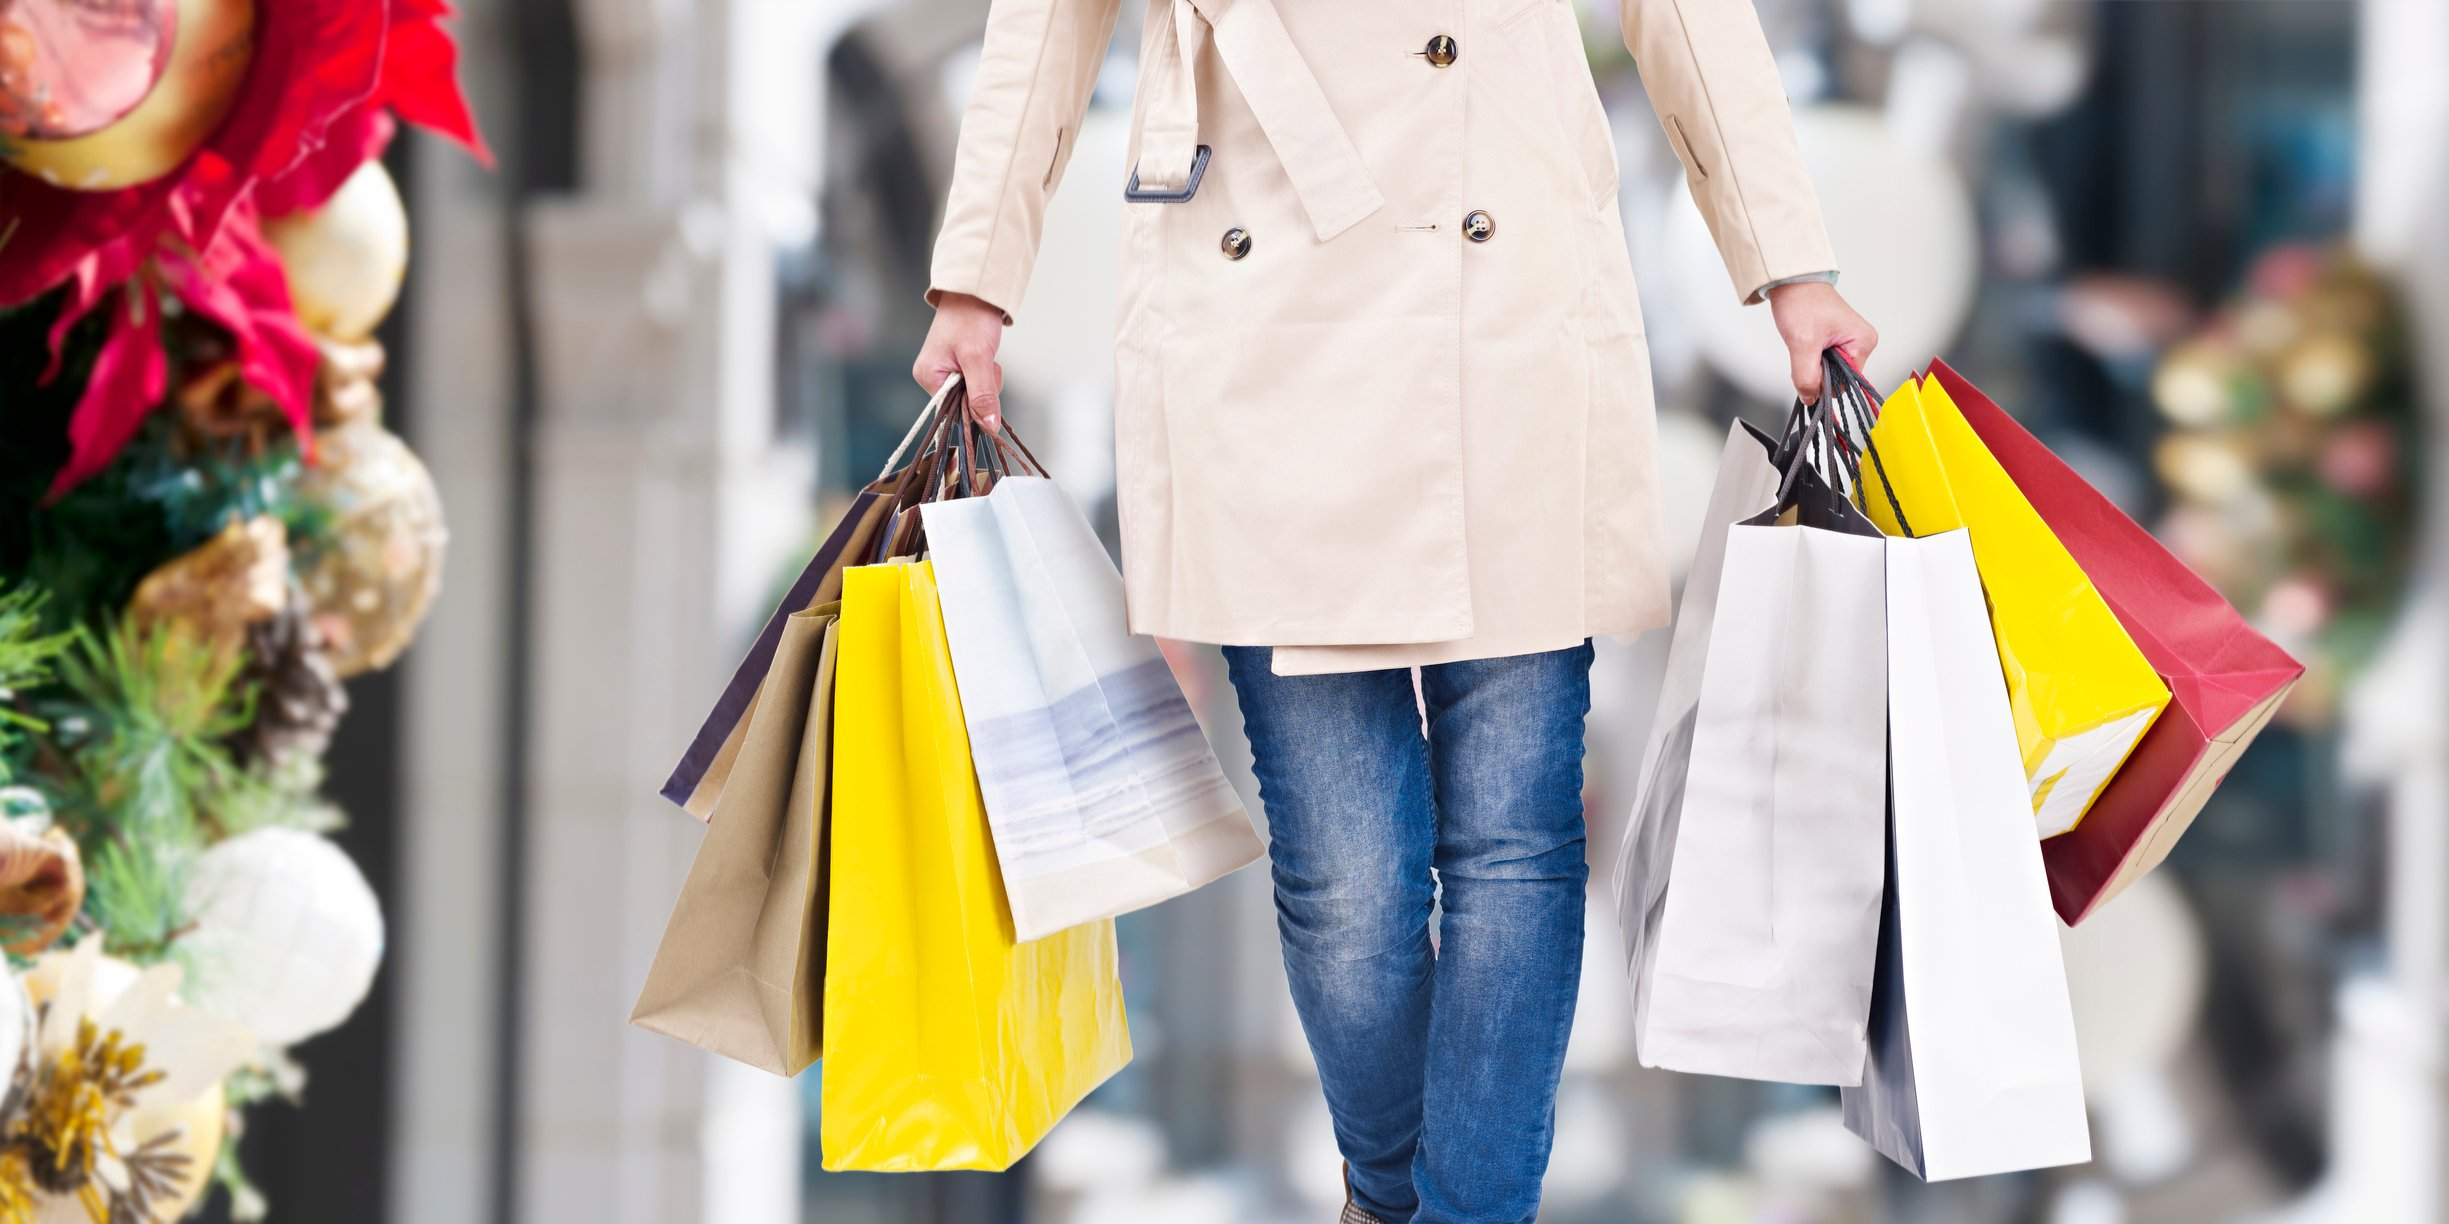 Woman carrying shopping bags during the holiday season.